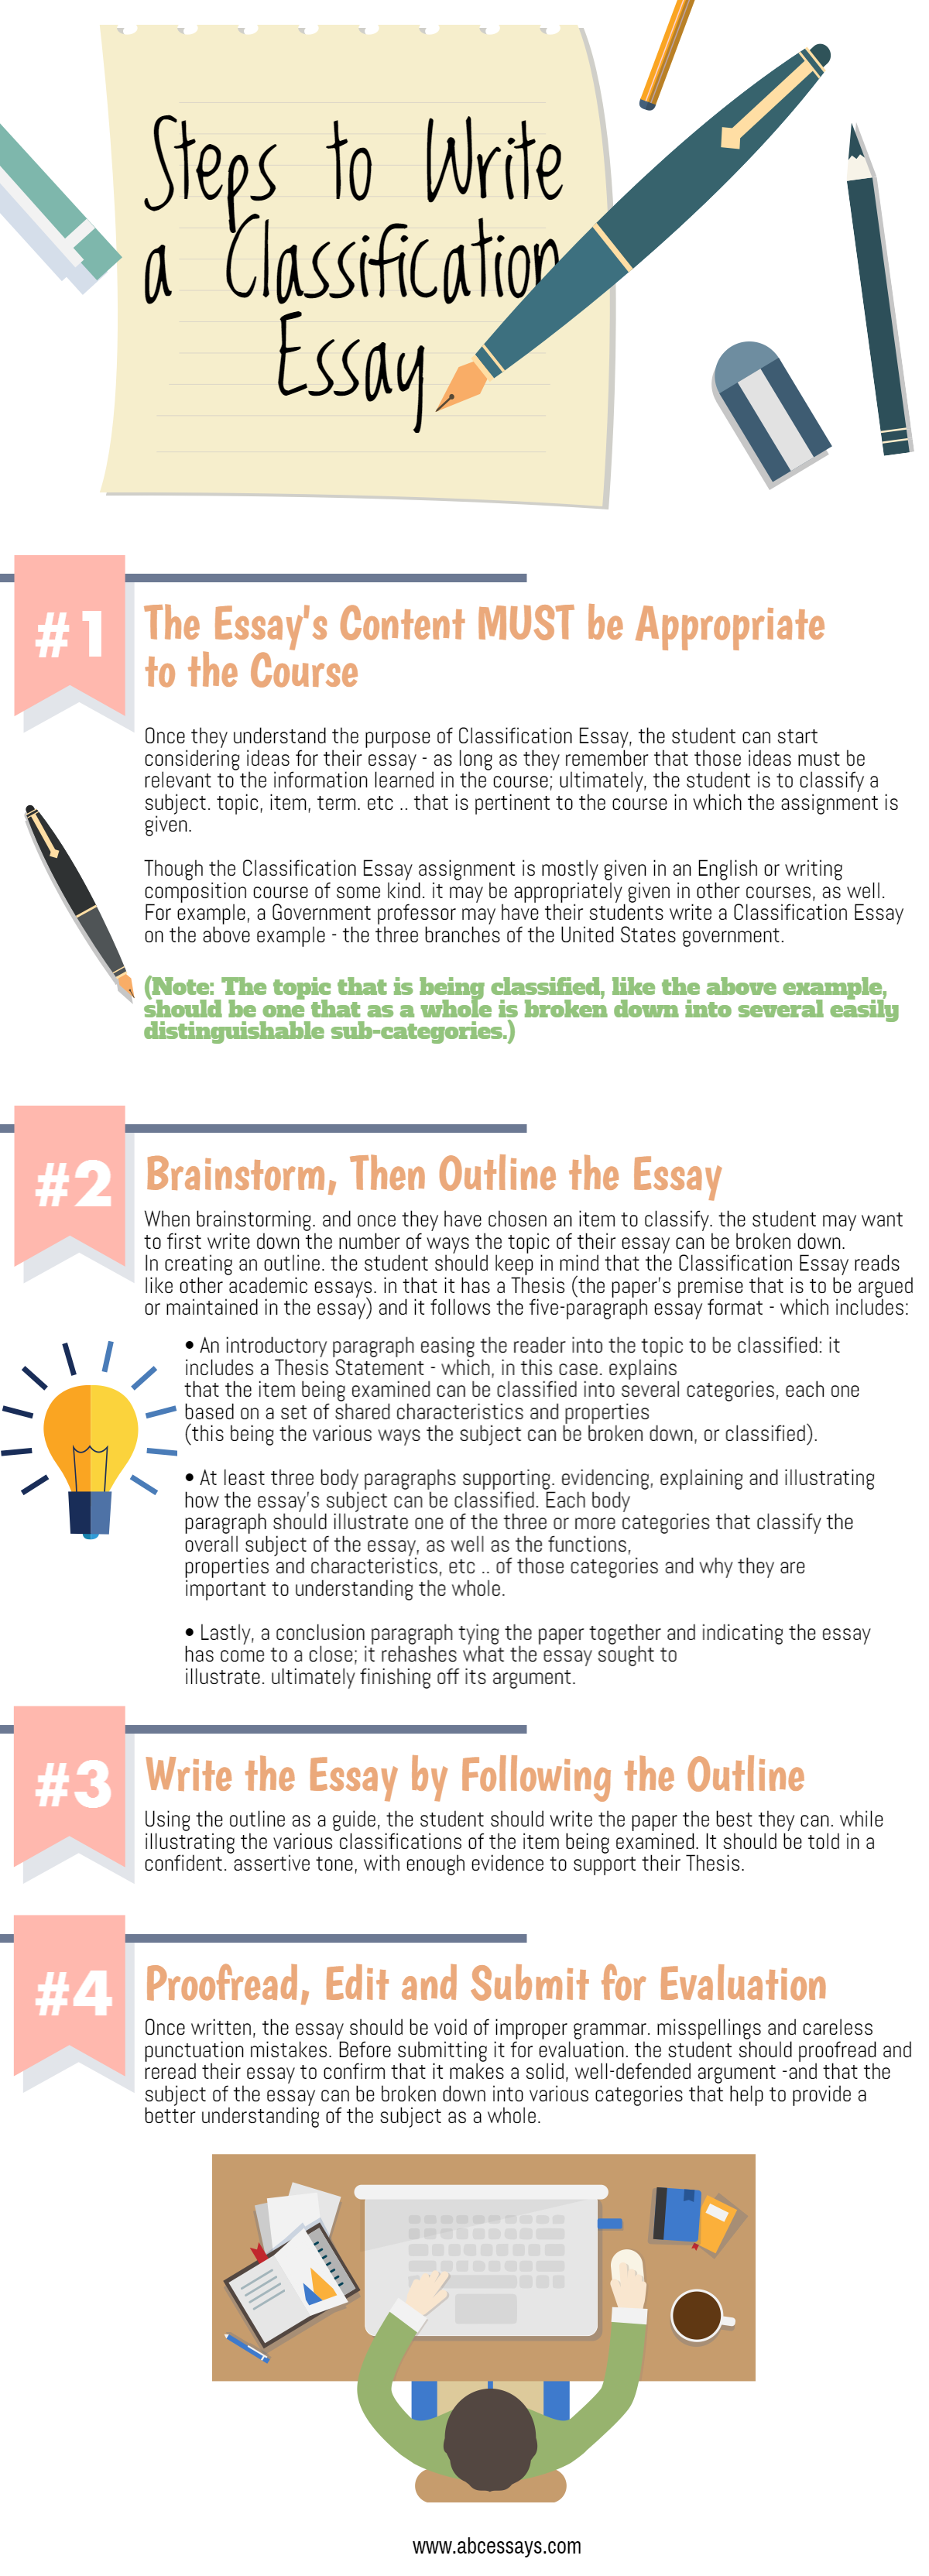 edit essay three step essay introduction how to write  how to write classification essay division essay examples division essay example classification and division essay classification